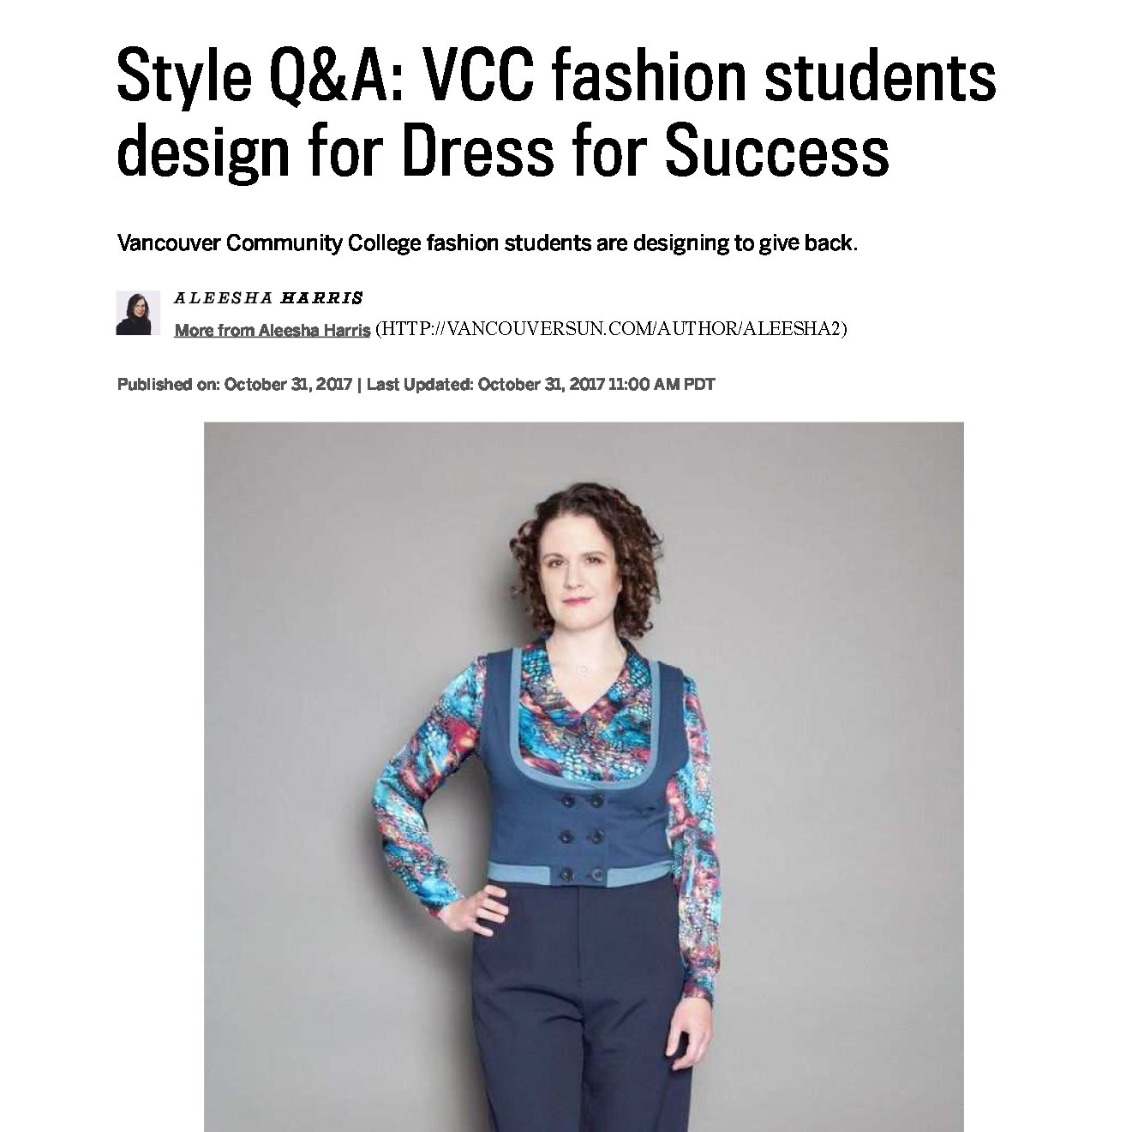 VCC students design for Dress for Success